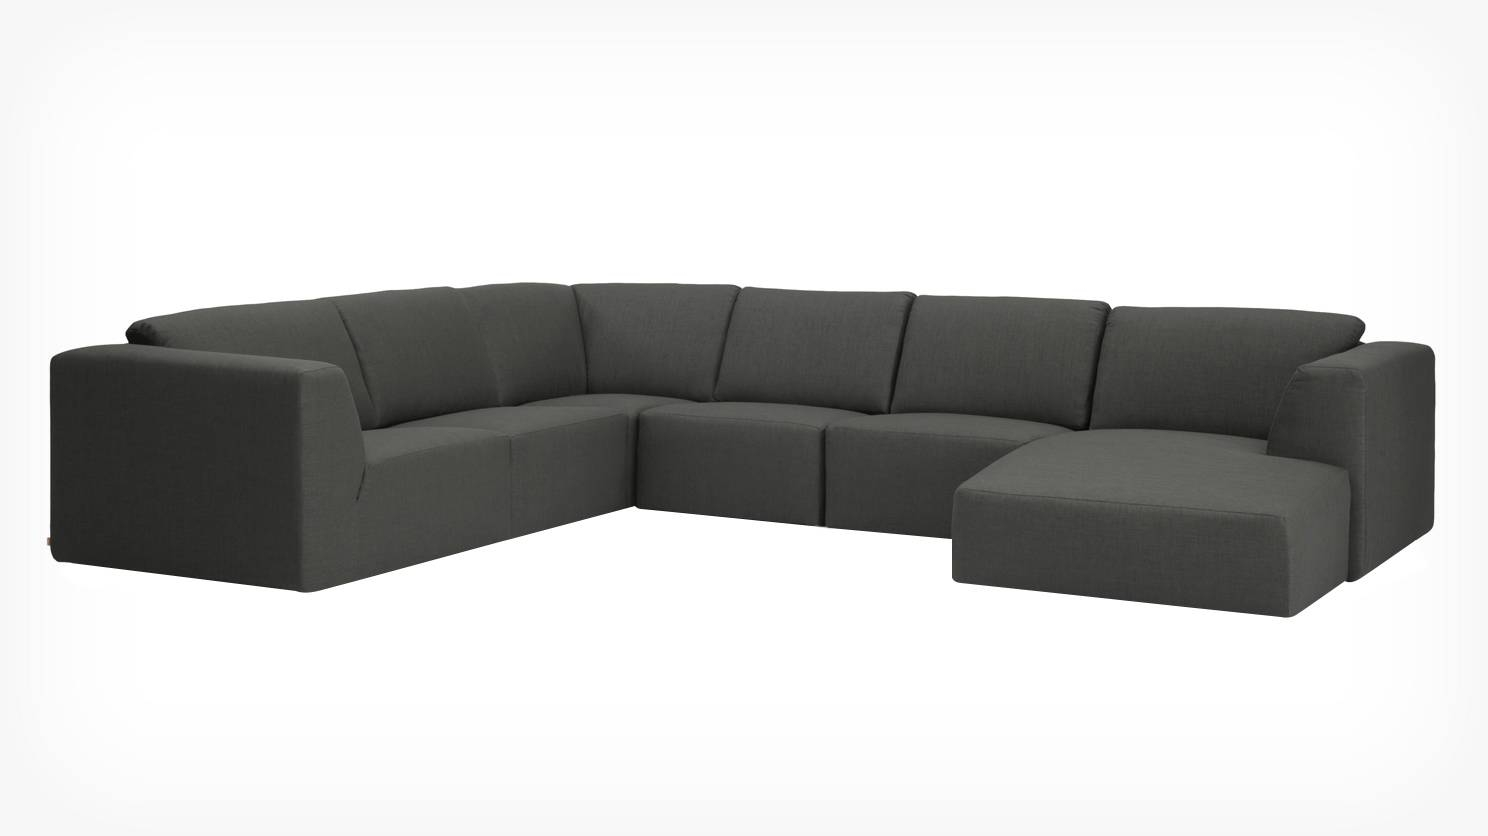 6 piece modular sectional sofa rp sleeper cover the best sofas couches